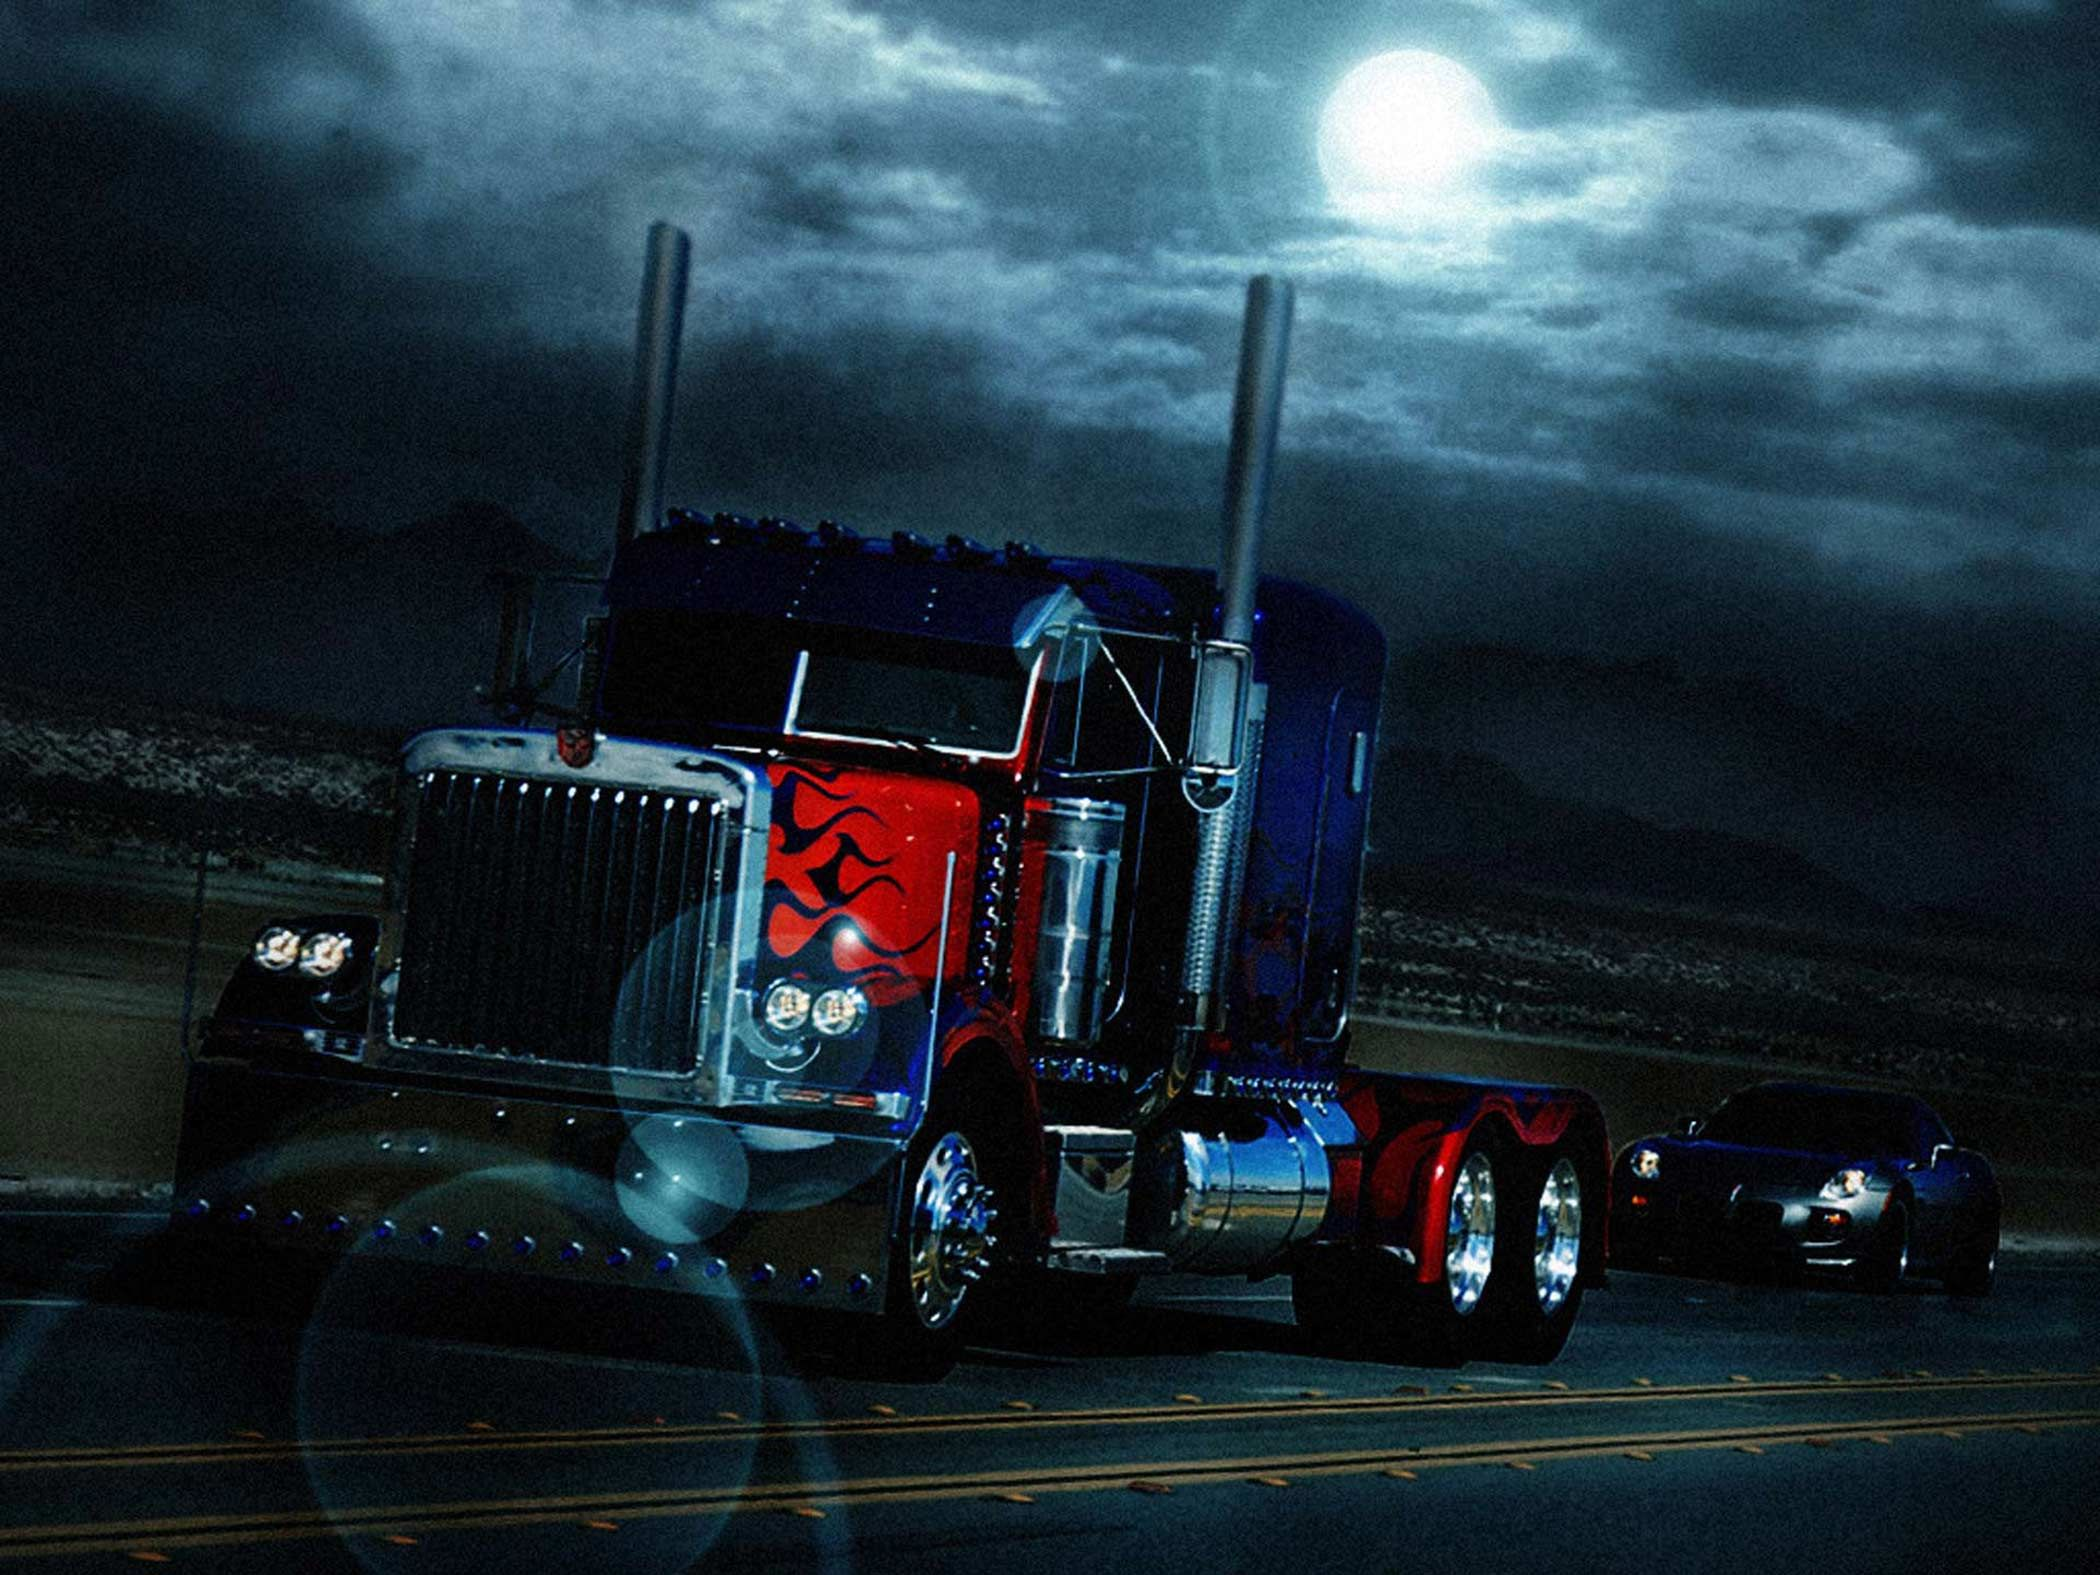 Trnasformer 4 age of extinction 20 amazing new - Wallpapers transformers 4 ...